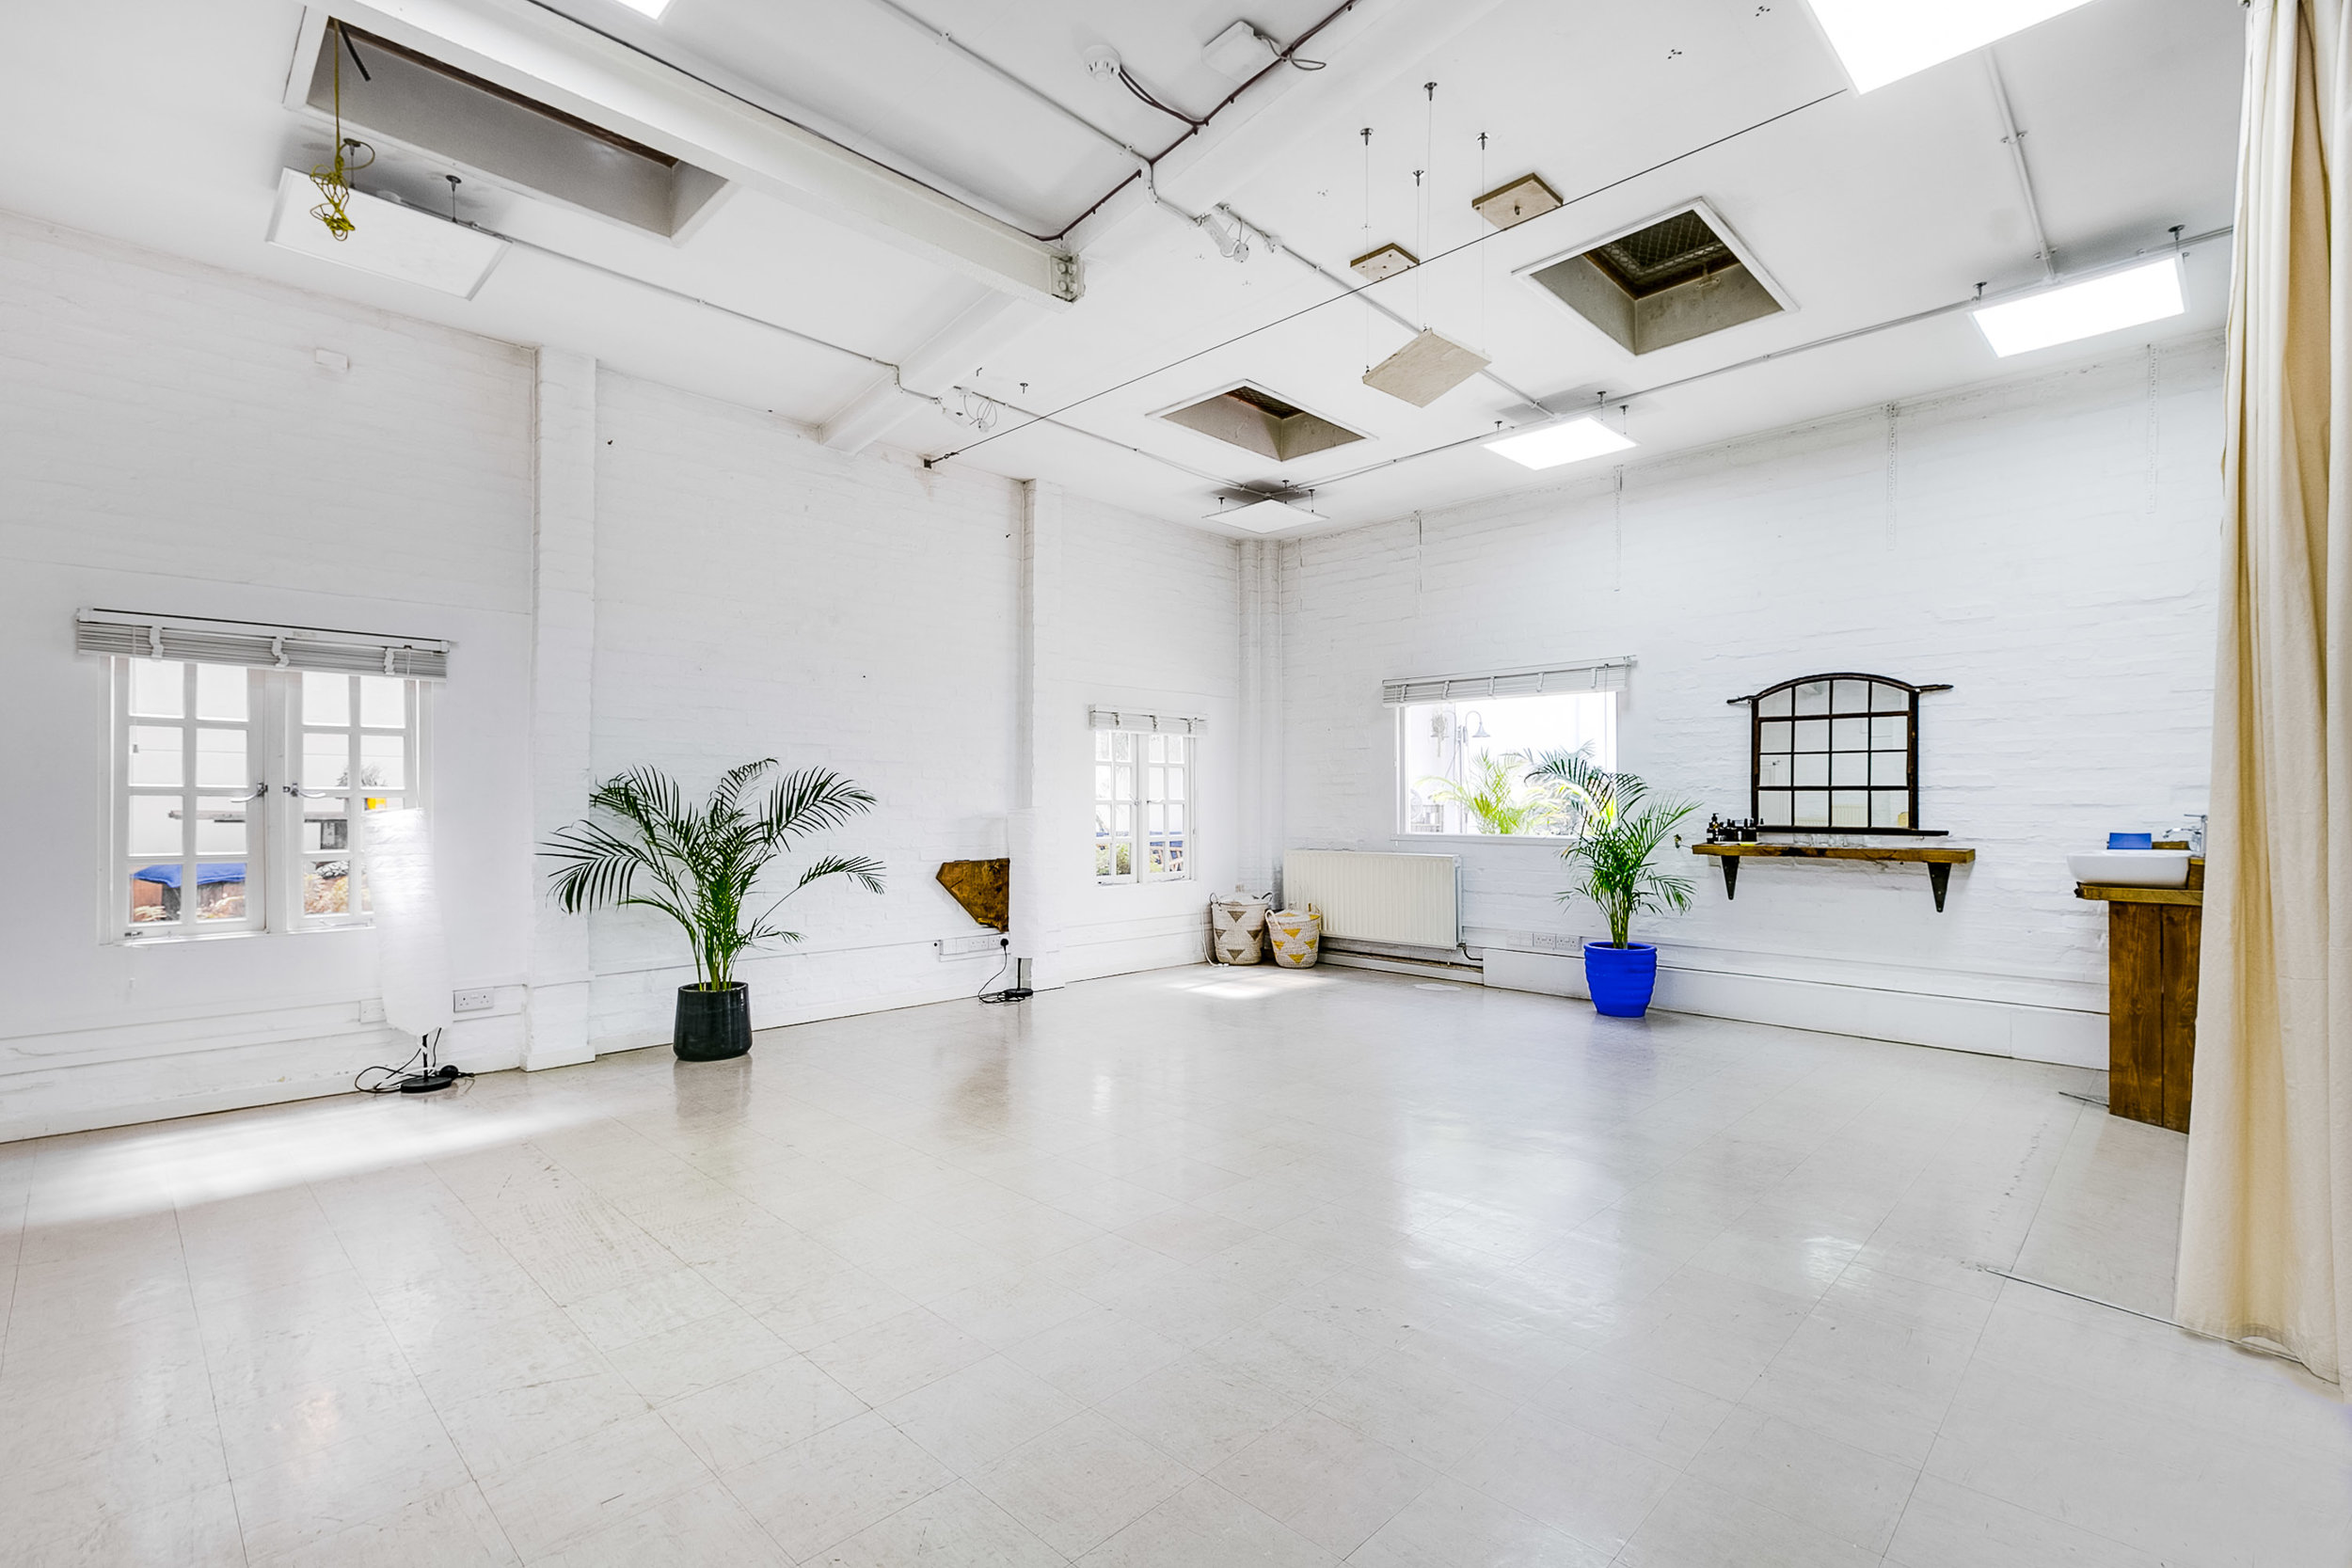 The Wellbeing Room at The Greenhouse N16 -Ideal for seminars, workshops, photoshoots, filming locations, yoga classes and many more.